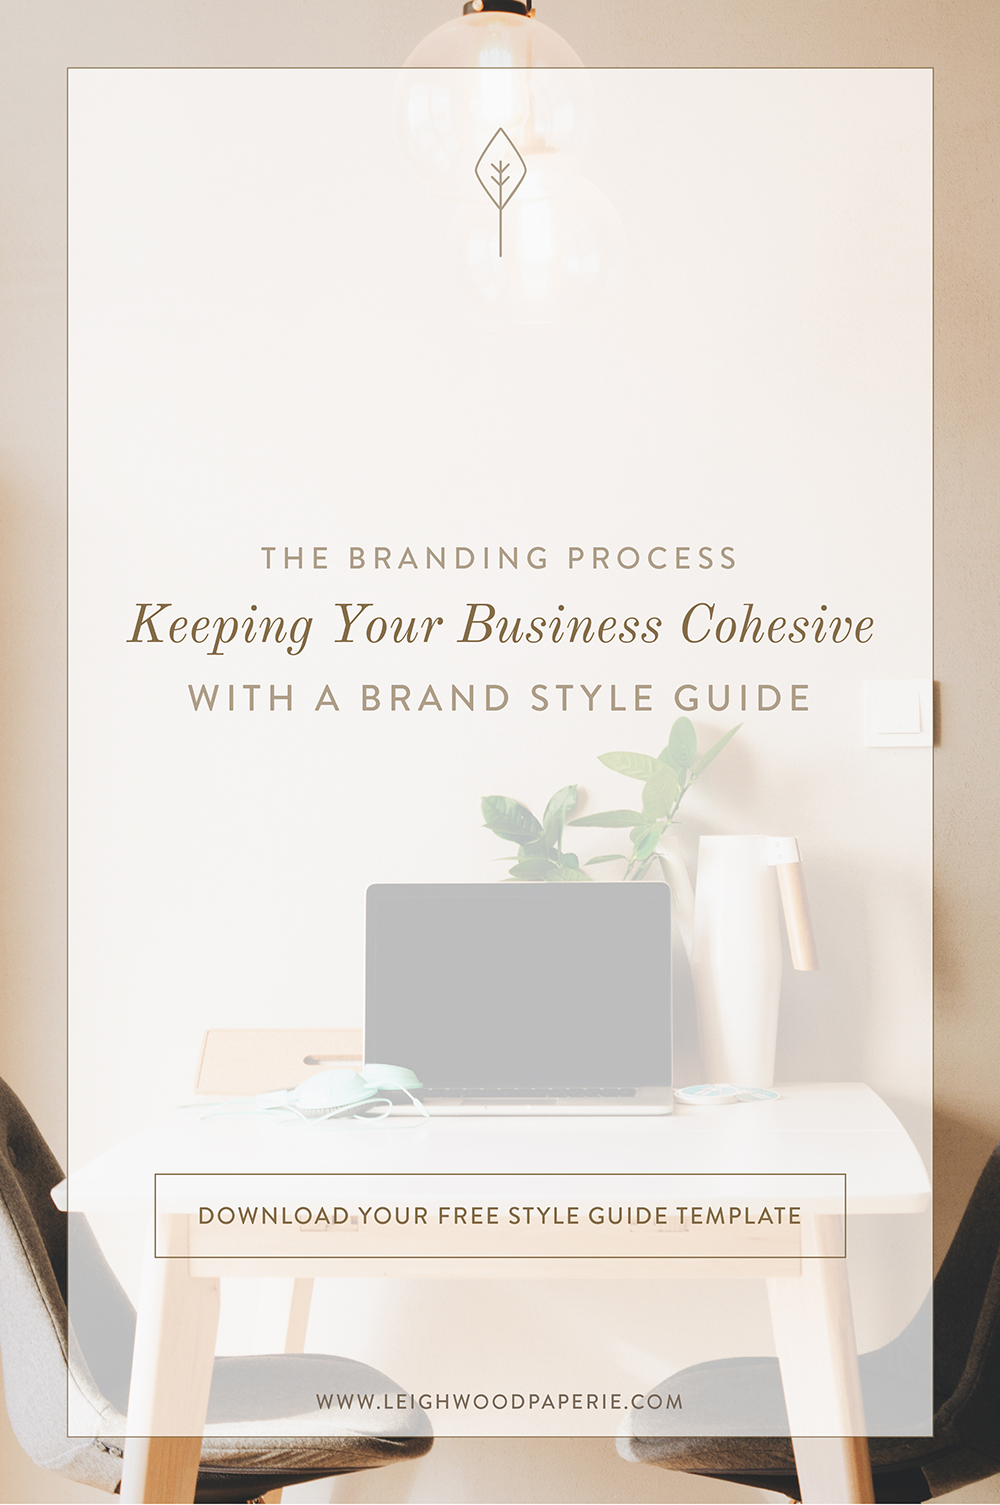 Leighwood Paperie THE BRANDING PROCESS Keeping Your Brand Cohesive With A Style Guide